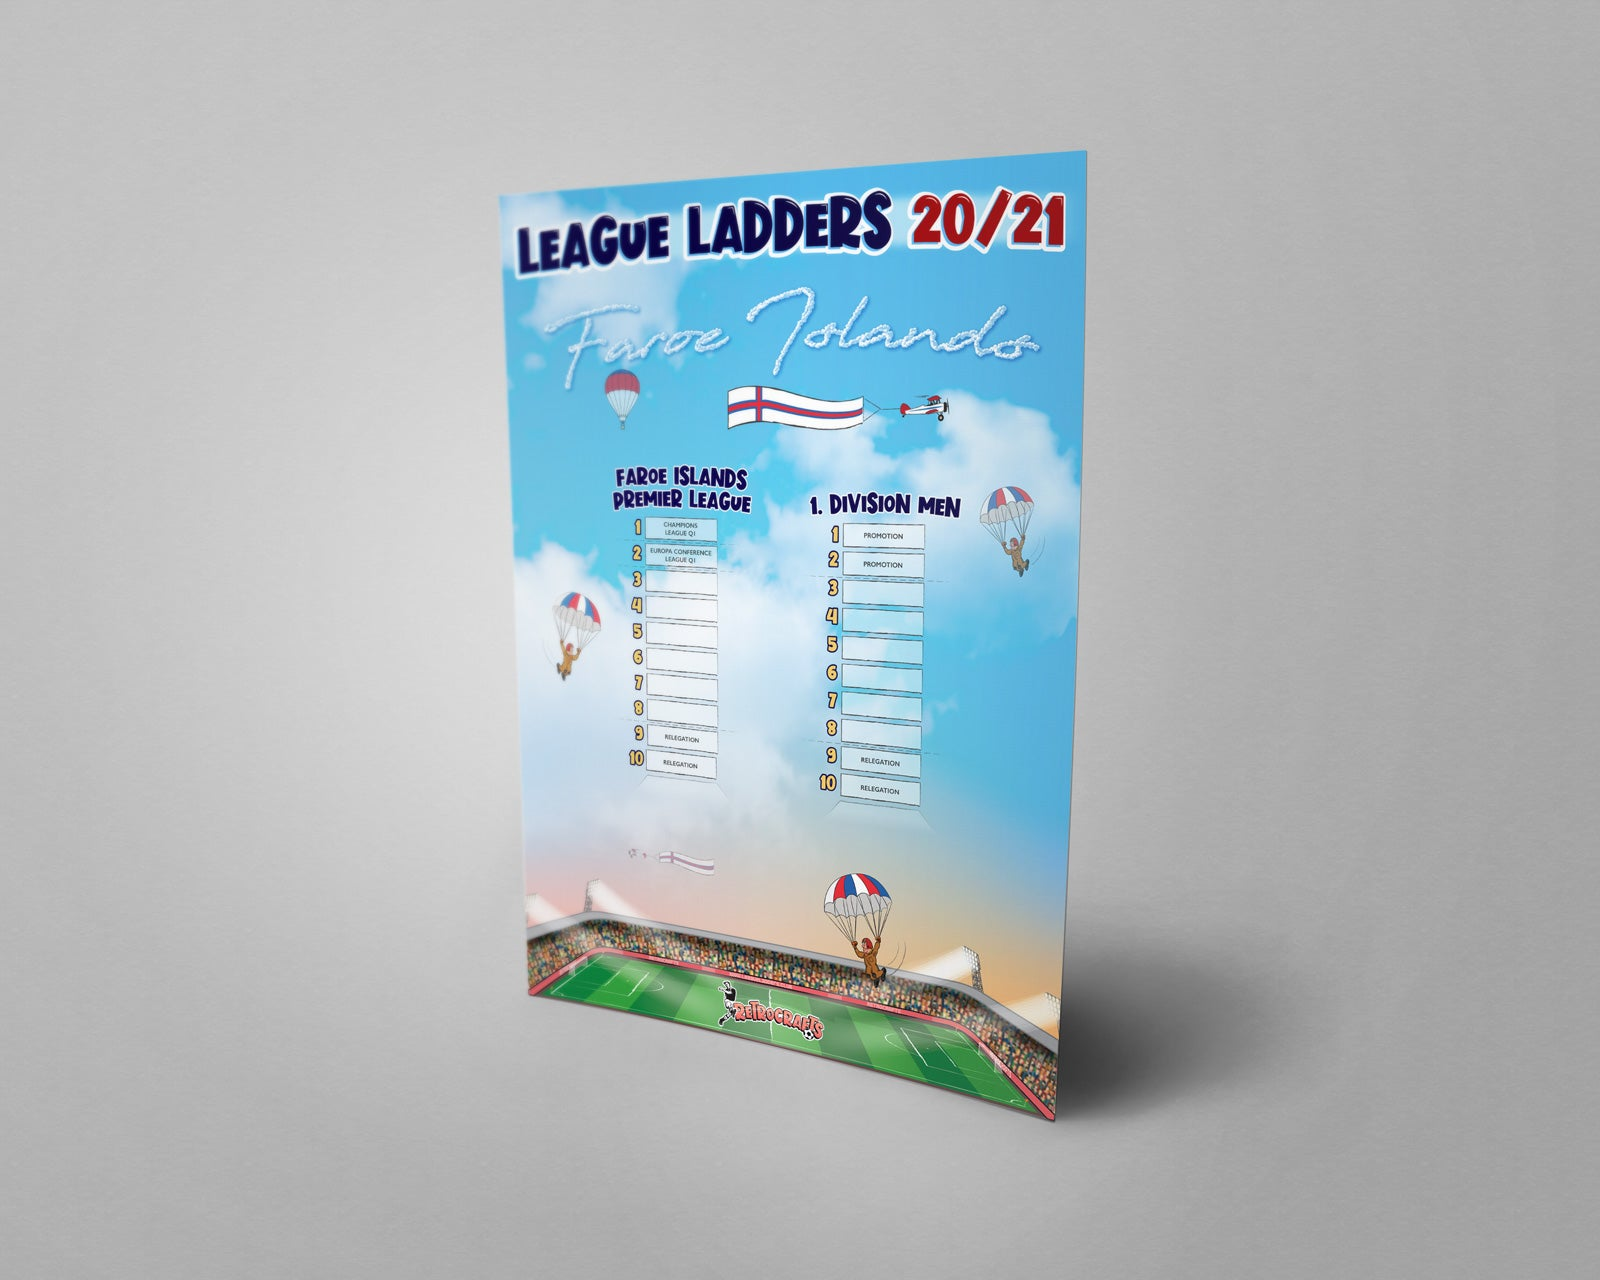 Faroe Islands Football League Premier League and 1. Deild Tiers 1-2 2020 Season League Ladders